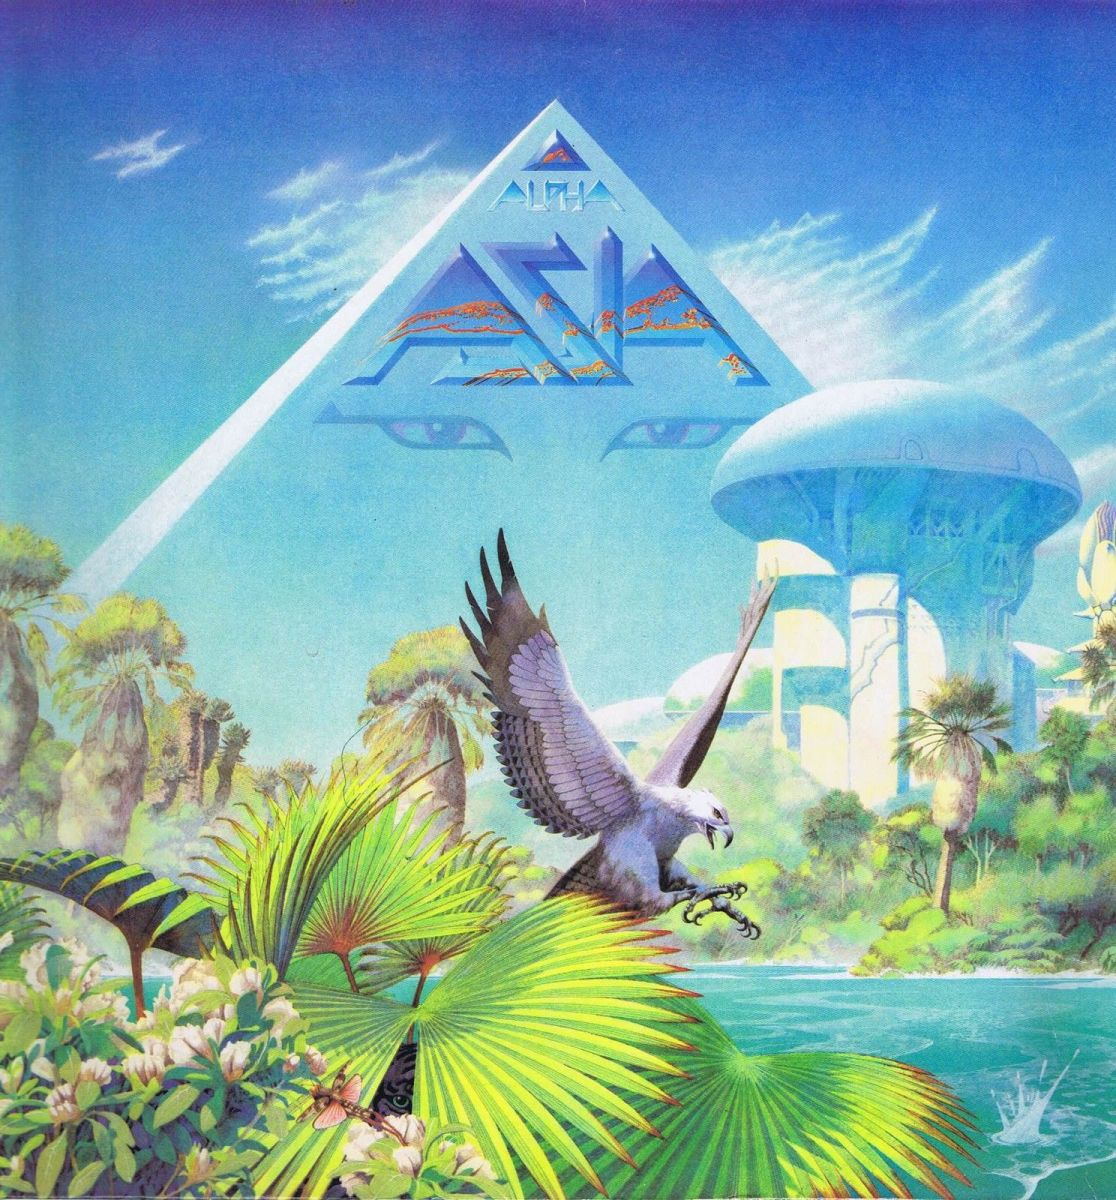 Album Cover Art By Roger Dean